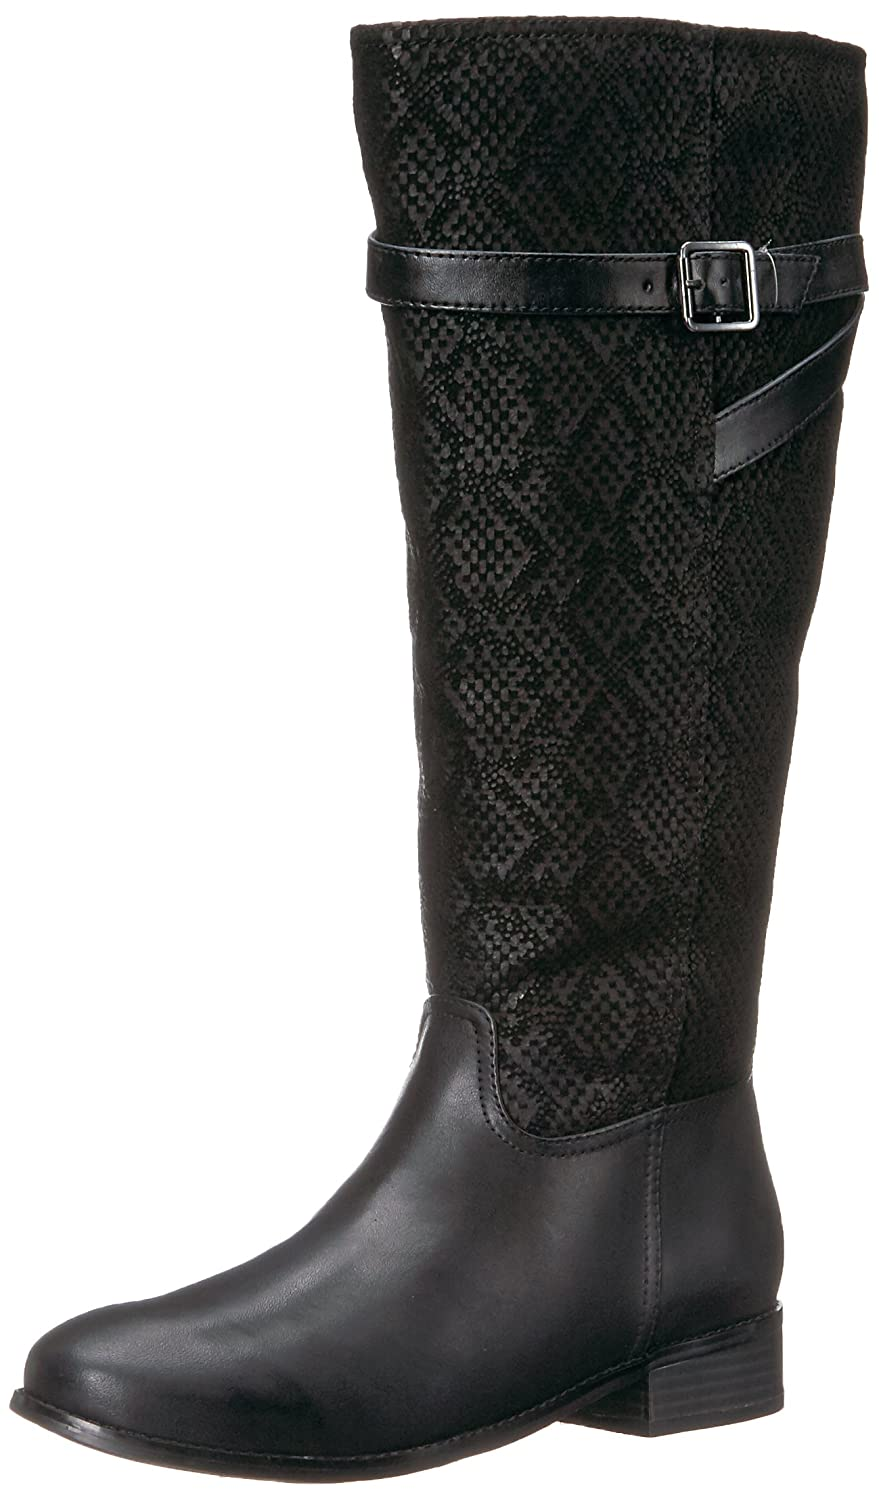 Trotters Women's Lyra Wide Calf Riding Boot B01NALW4FO 8.5 B(M) US|Black